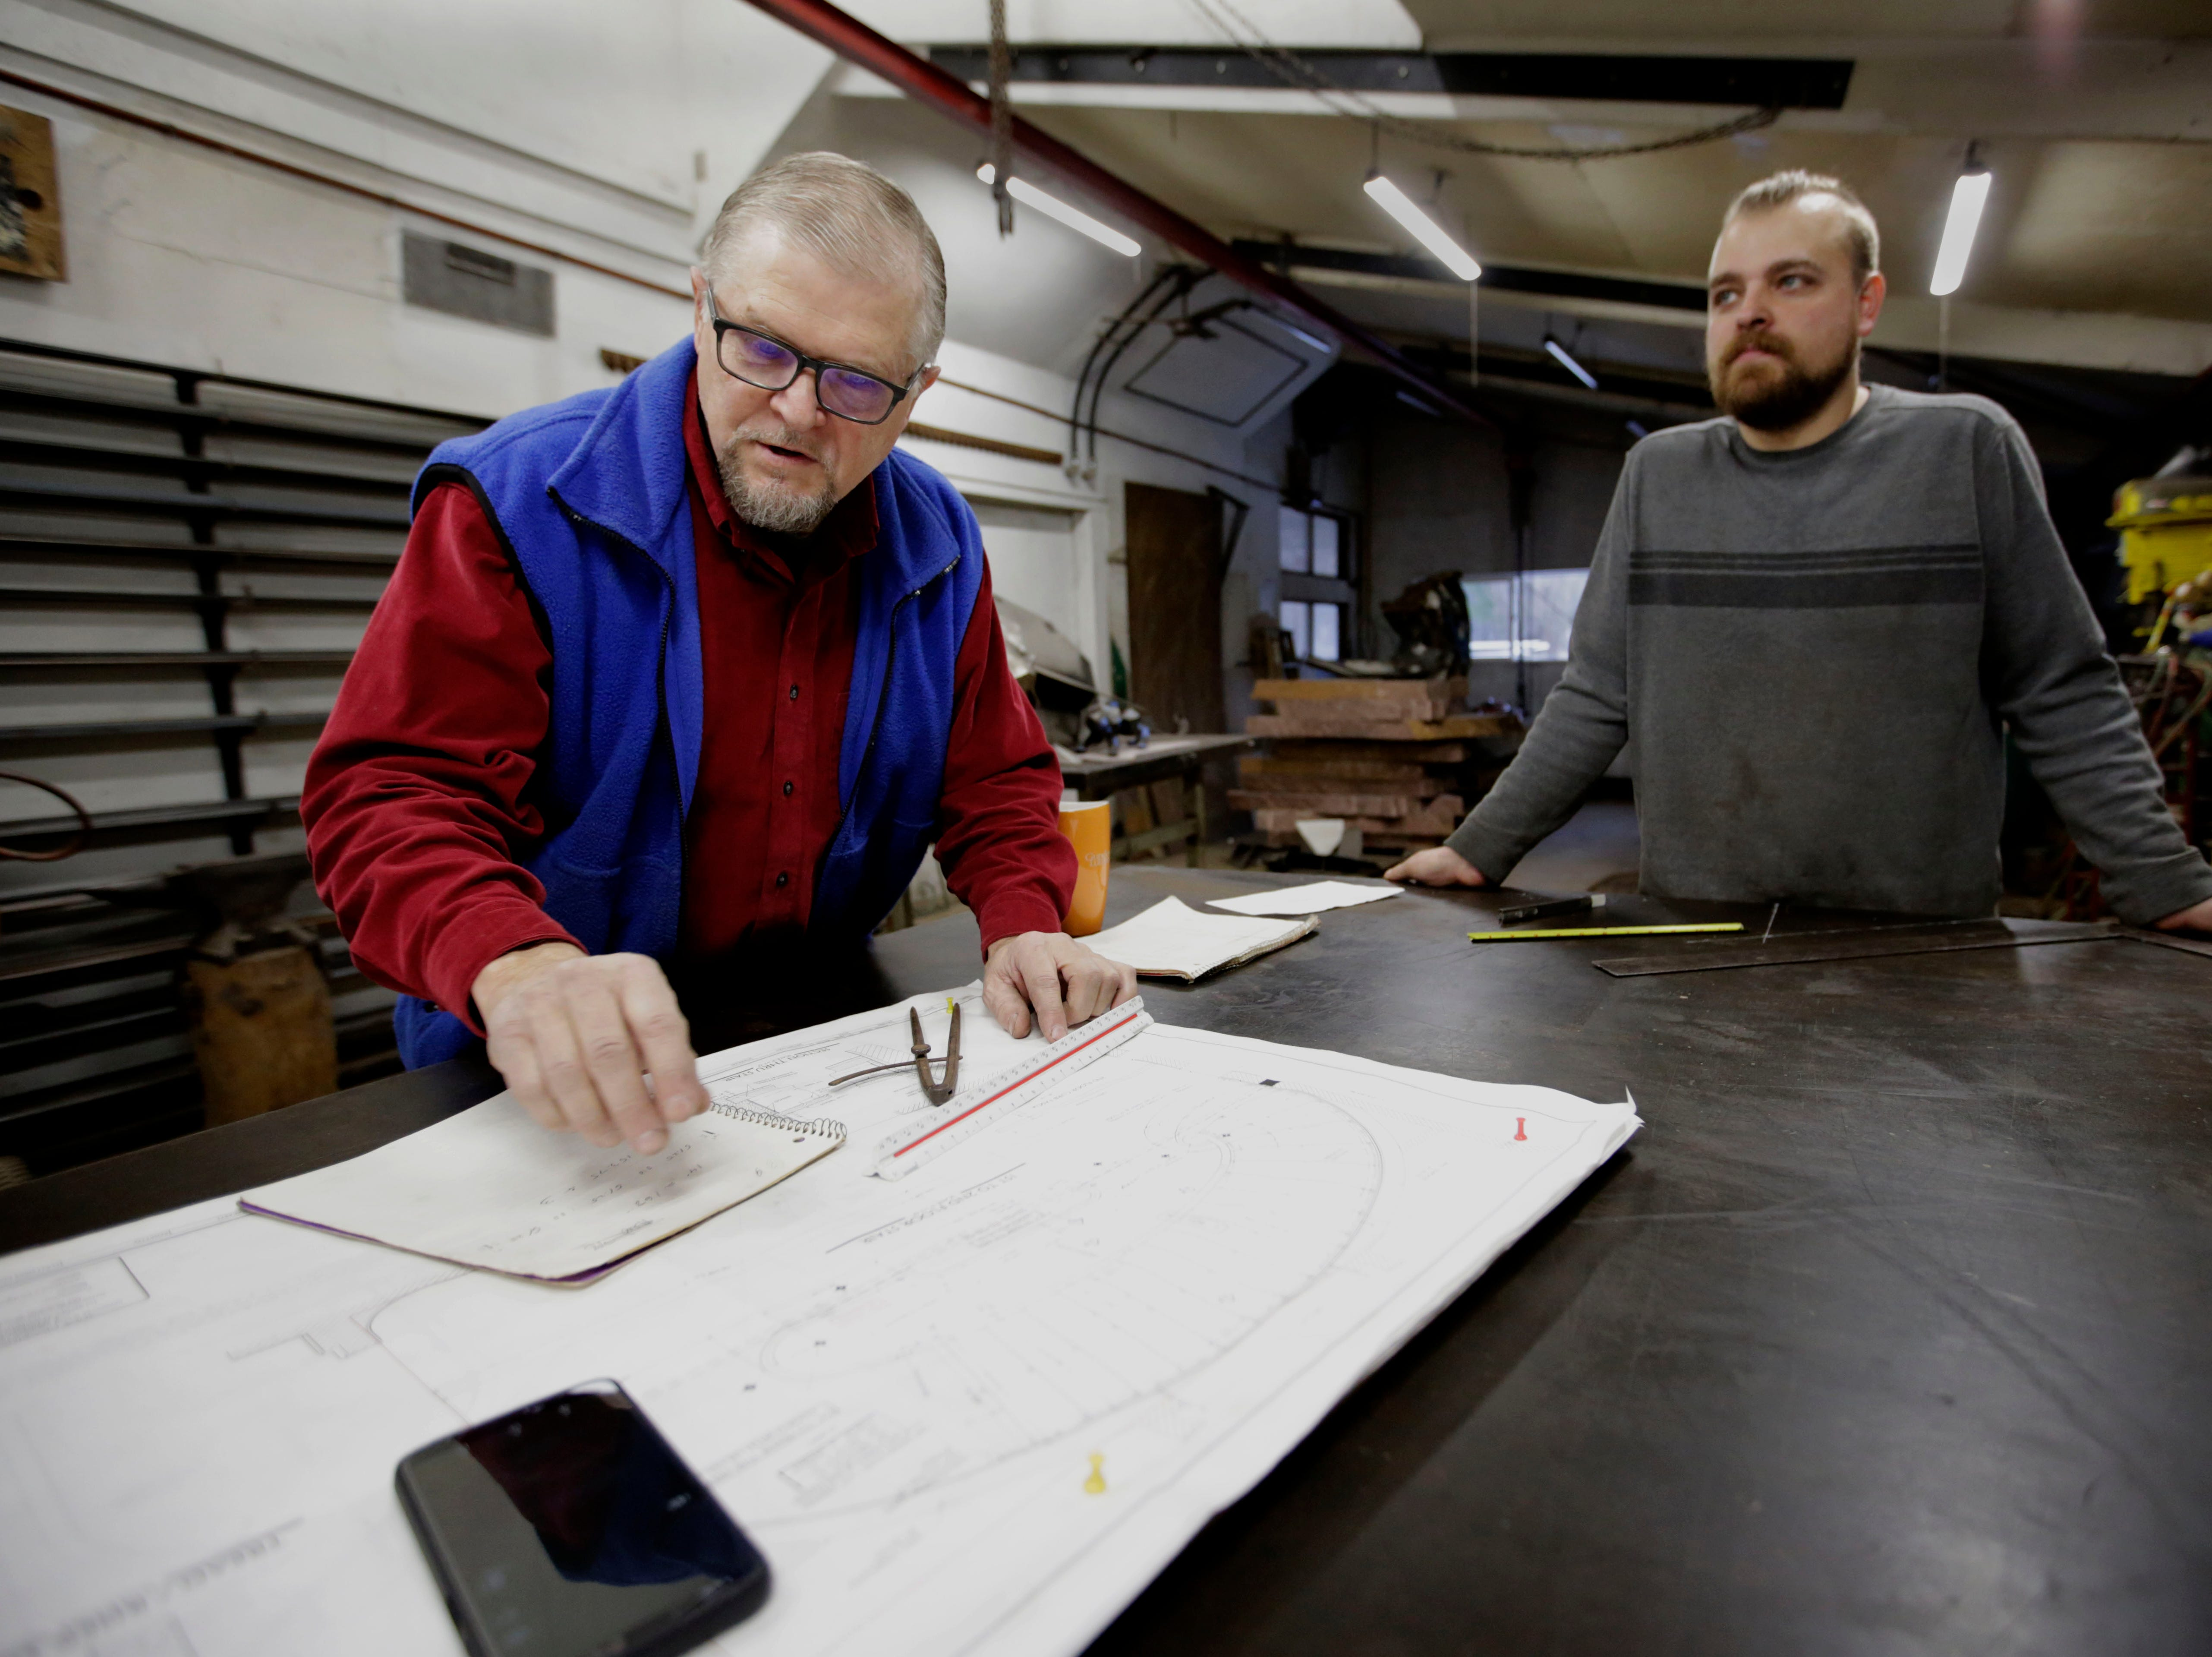 Boleslaw and Vincent Kochanowski go over designs for a private project on Wednesday, December 5, 2018, at their workshop in Junction City, Wis. Tork Mason/USA Today NETWORK-Wisconsin